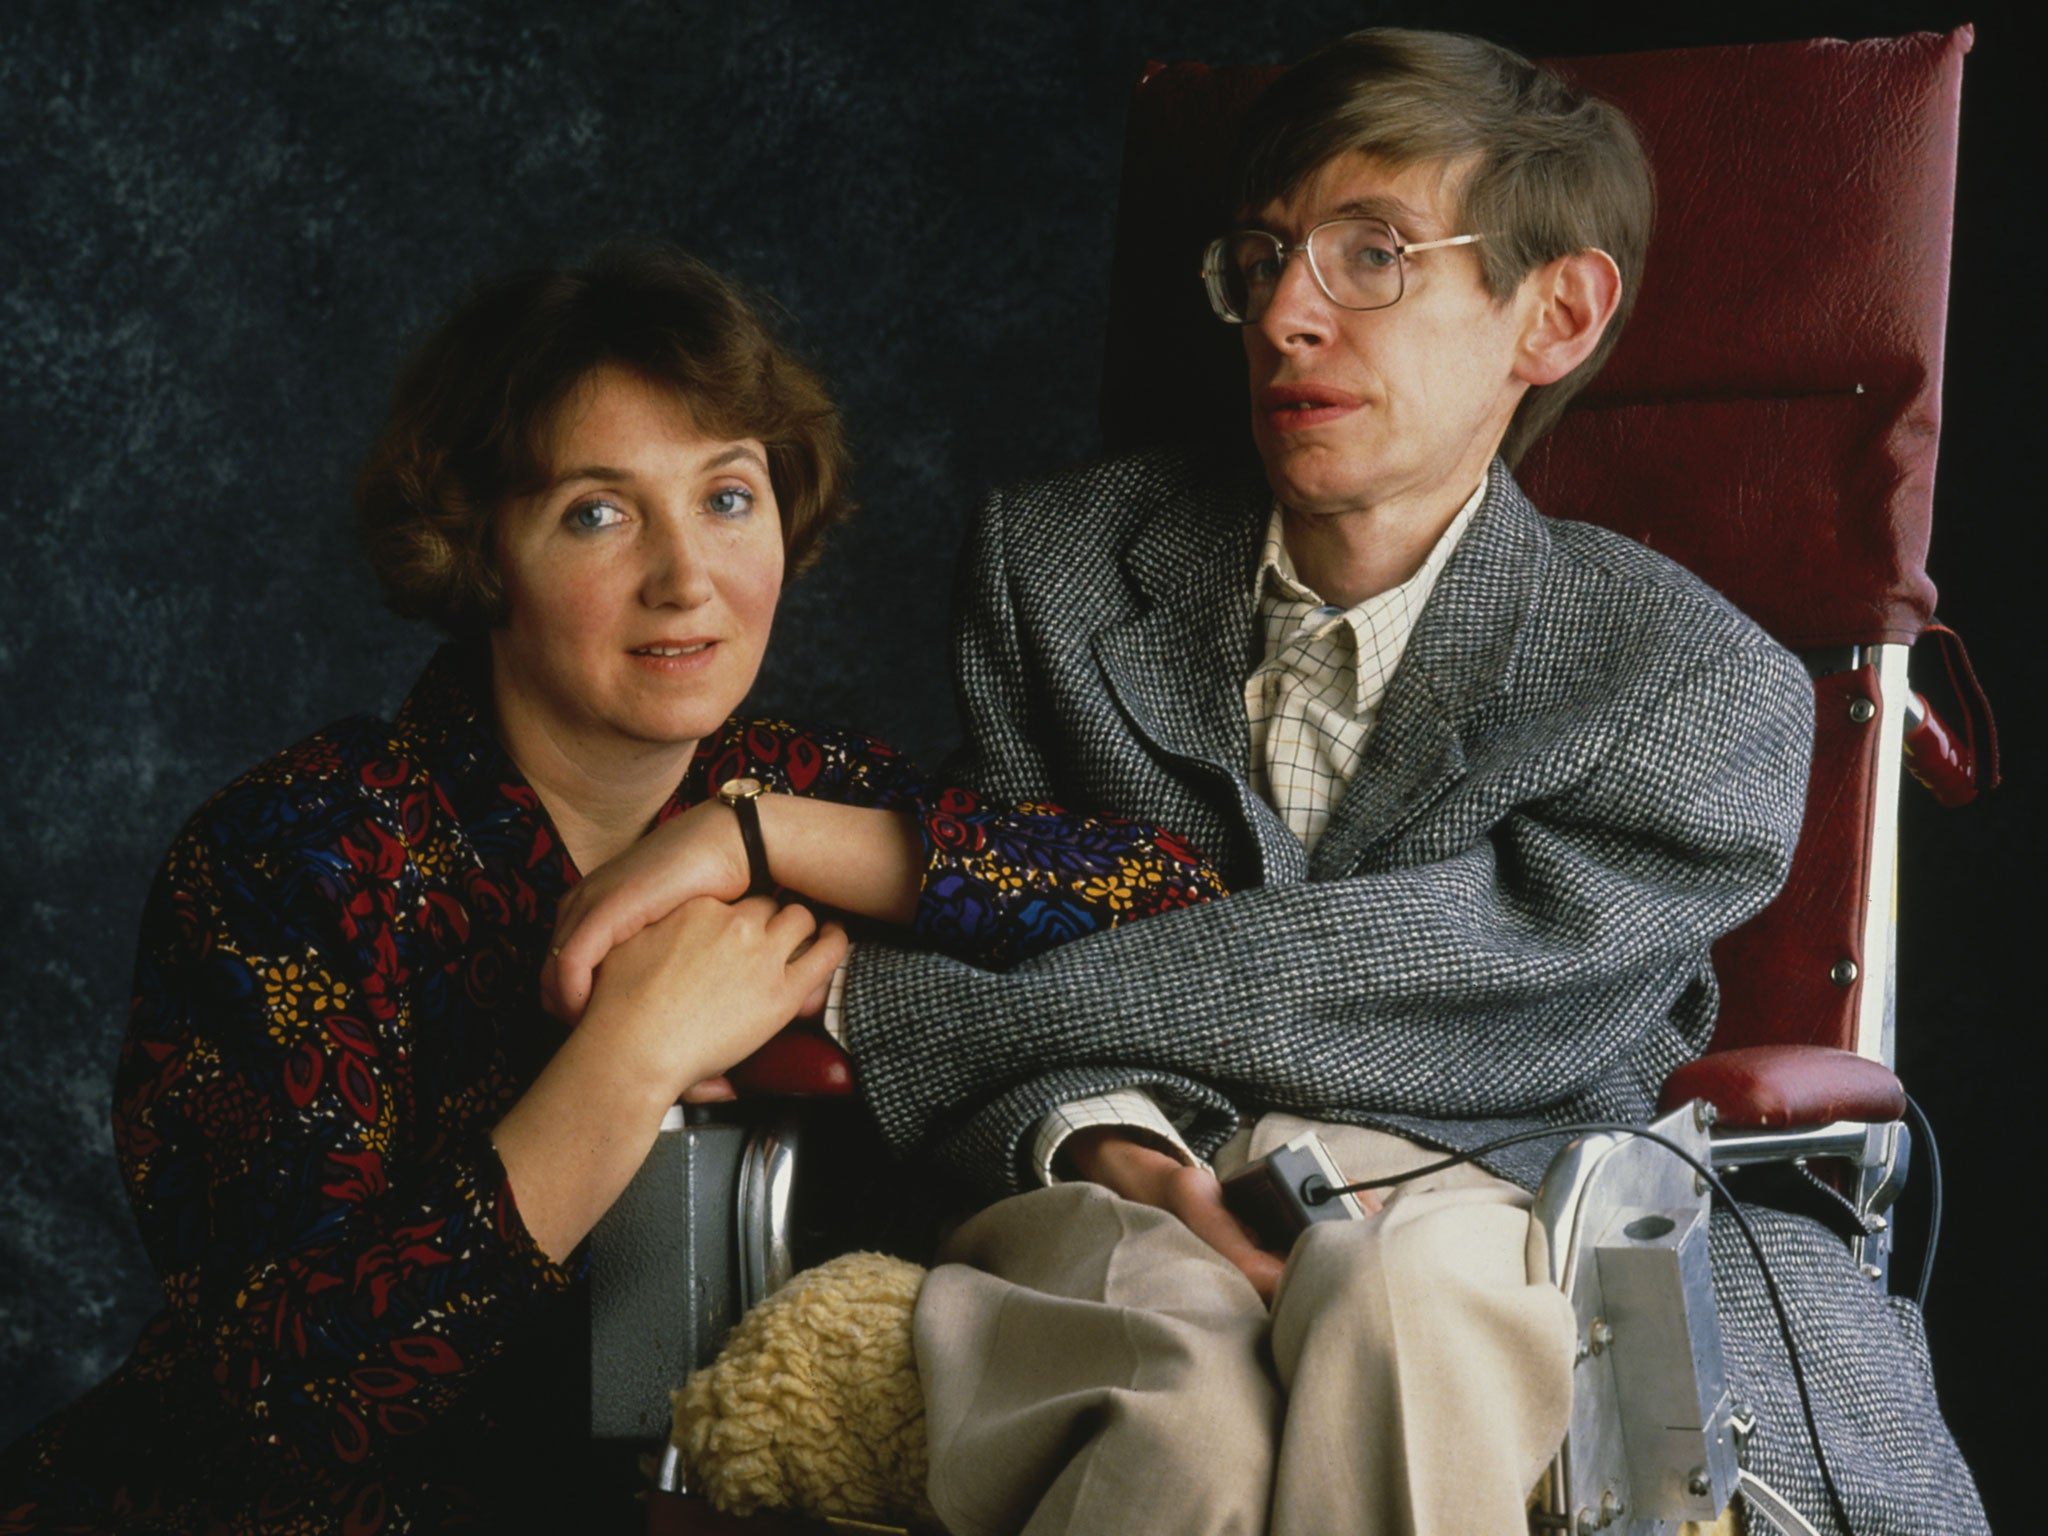 an introduction to the life of stephen w hawking Stephen hawking, a pioneering cosmologist and author on life remember to look the year before, he said in an introduction to the 2010 tv documentary series into the universe with stephen hawking.